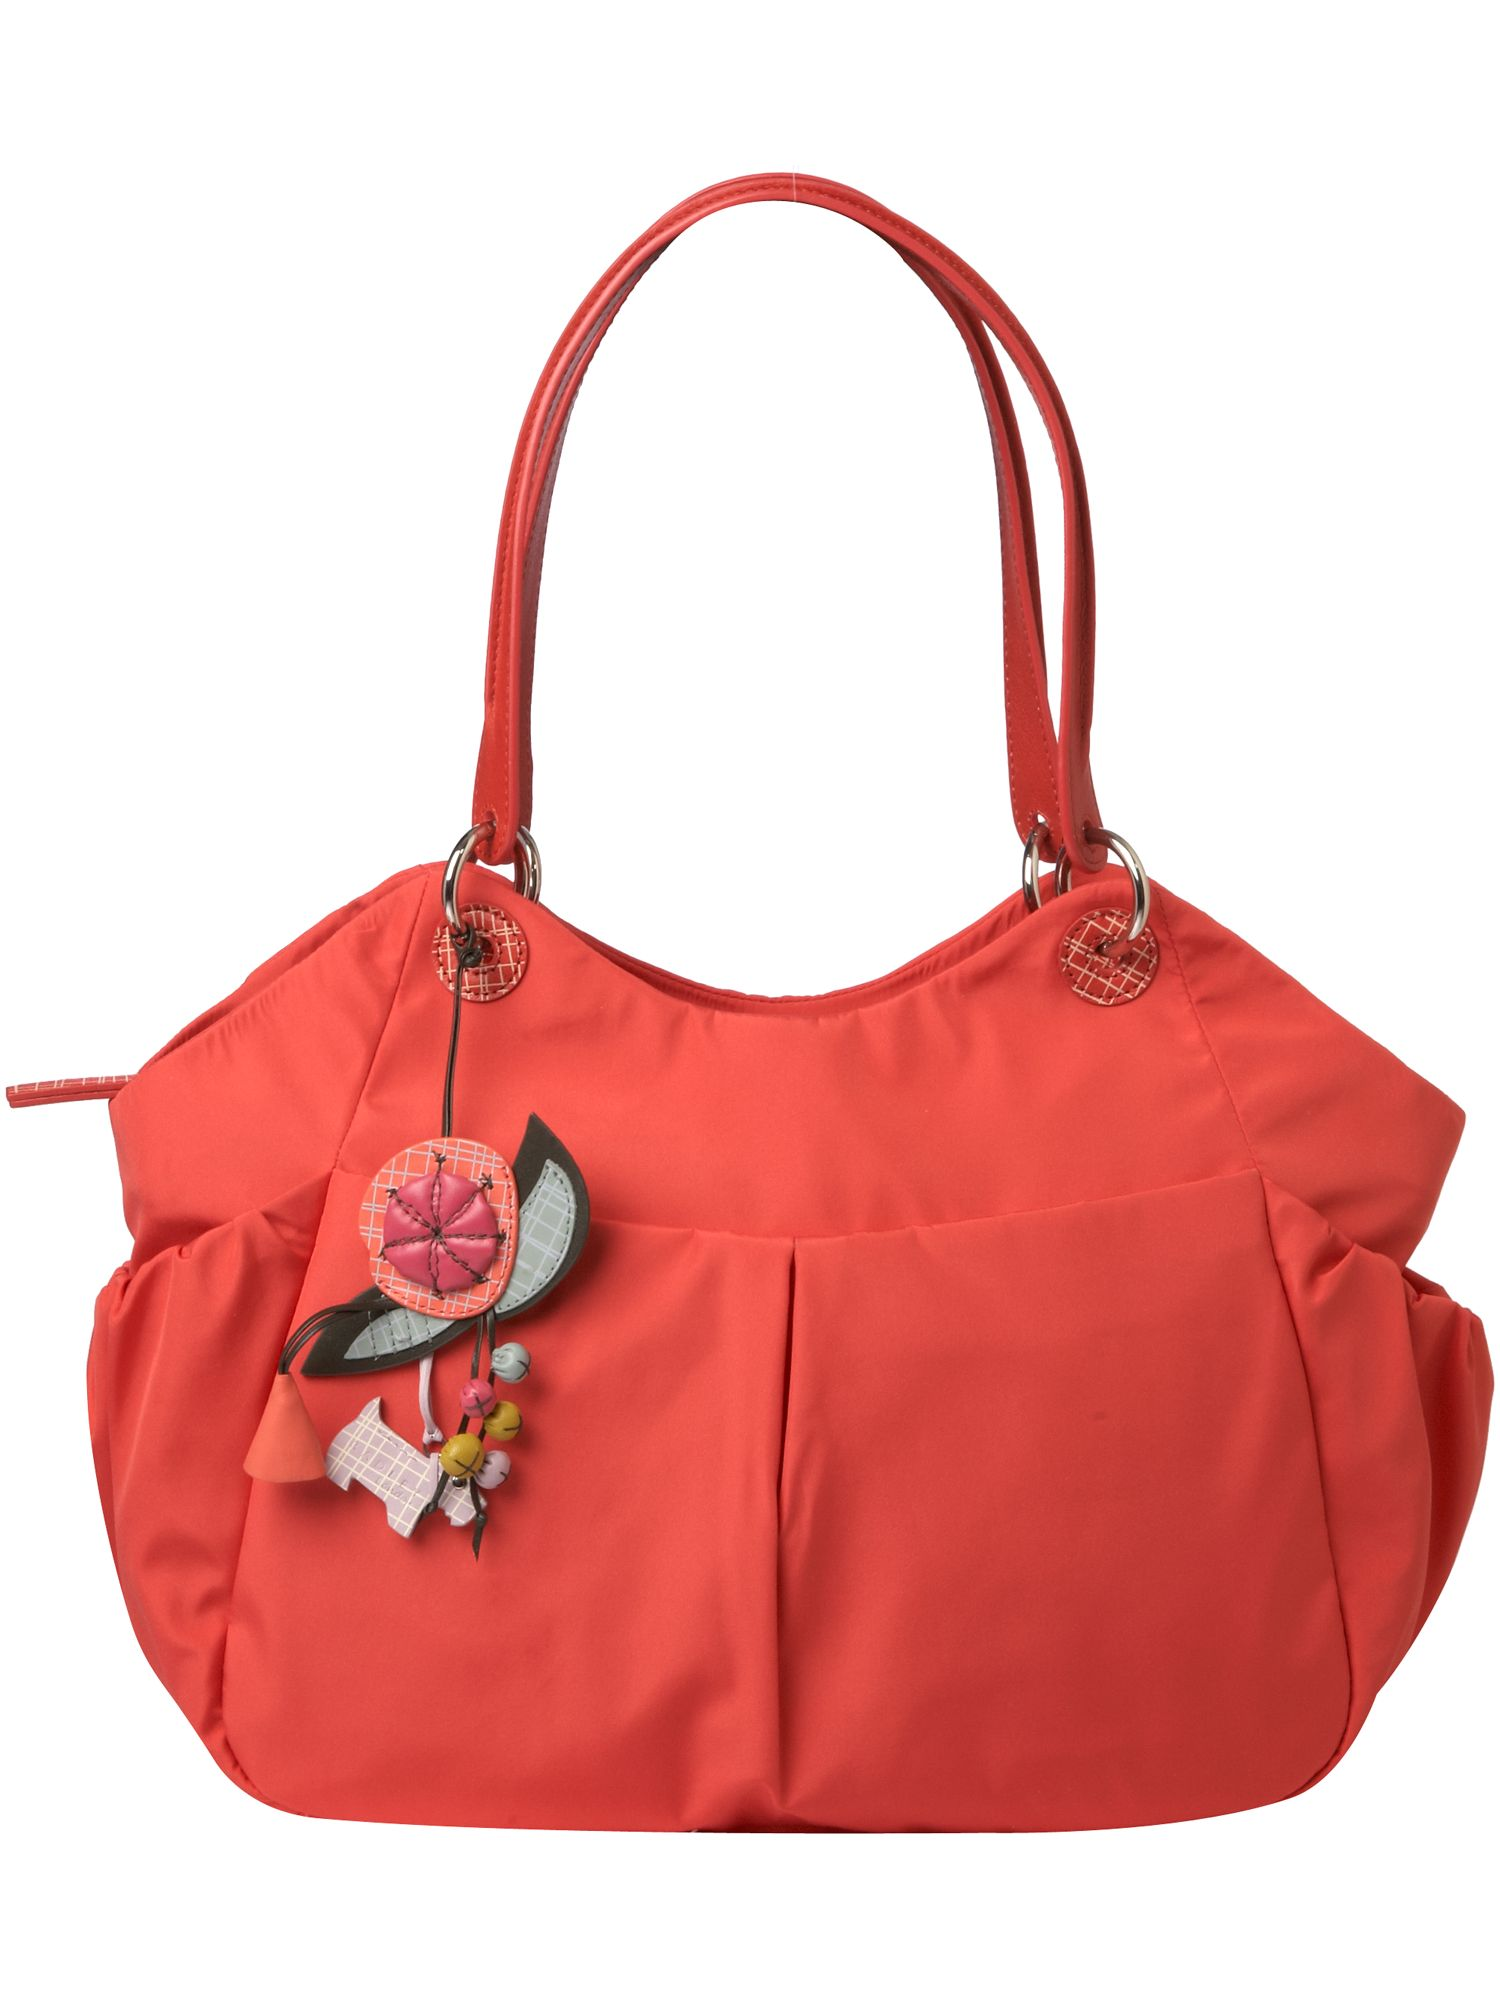 Vanessa Large Shoulder Tote Bag